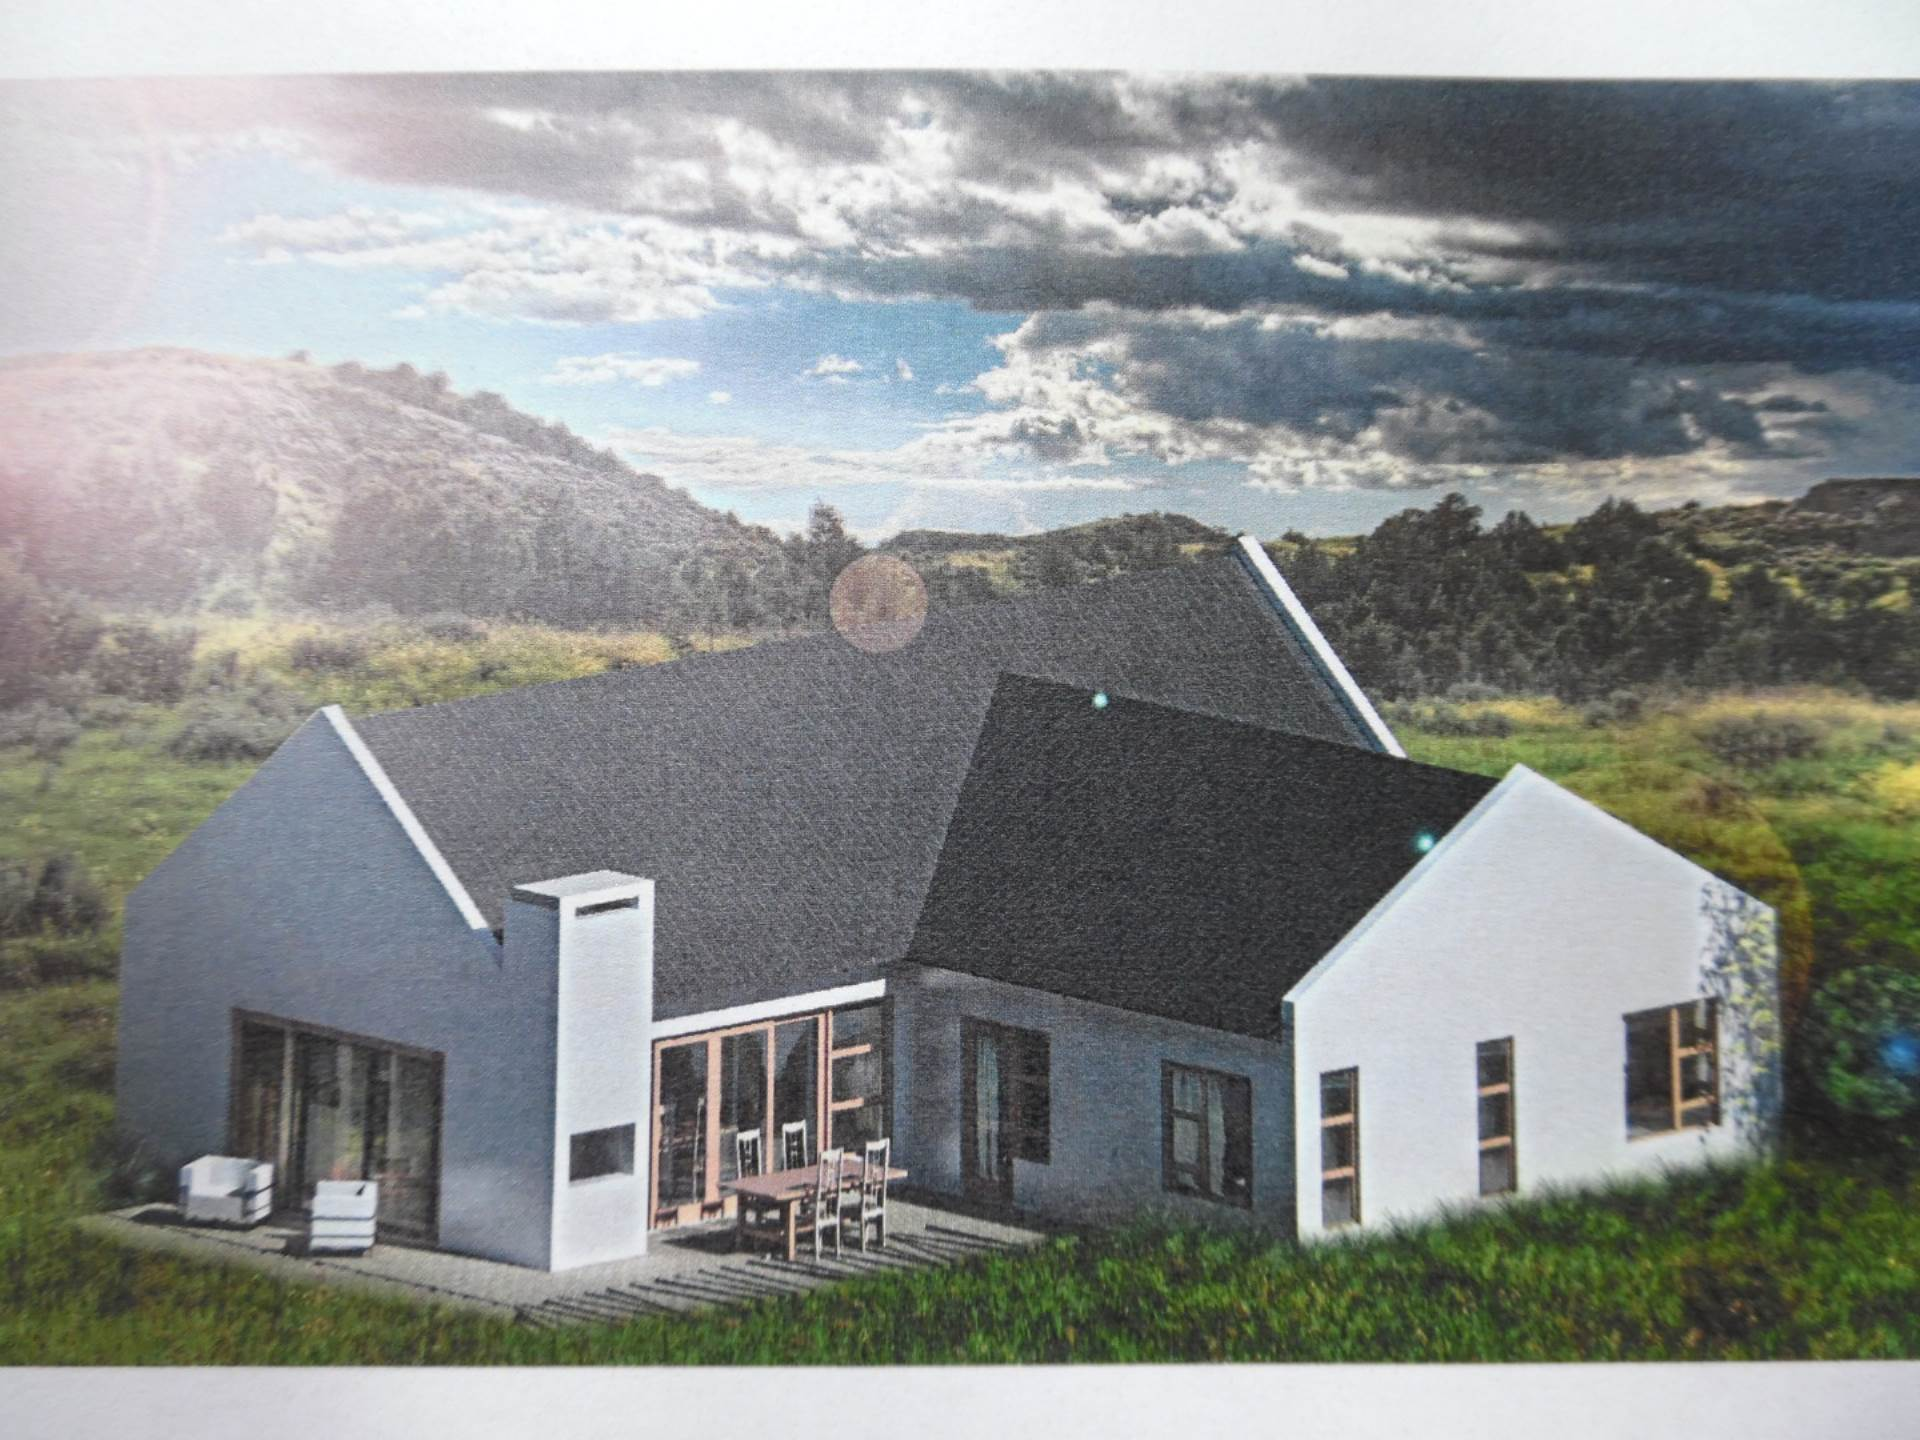 2 BedroomHouse For Sale In Malmesbury